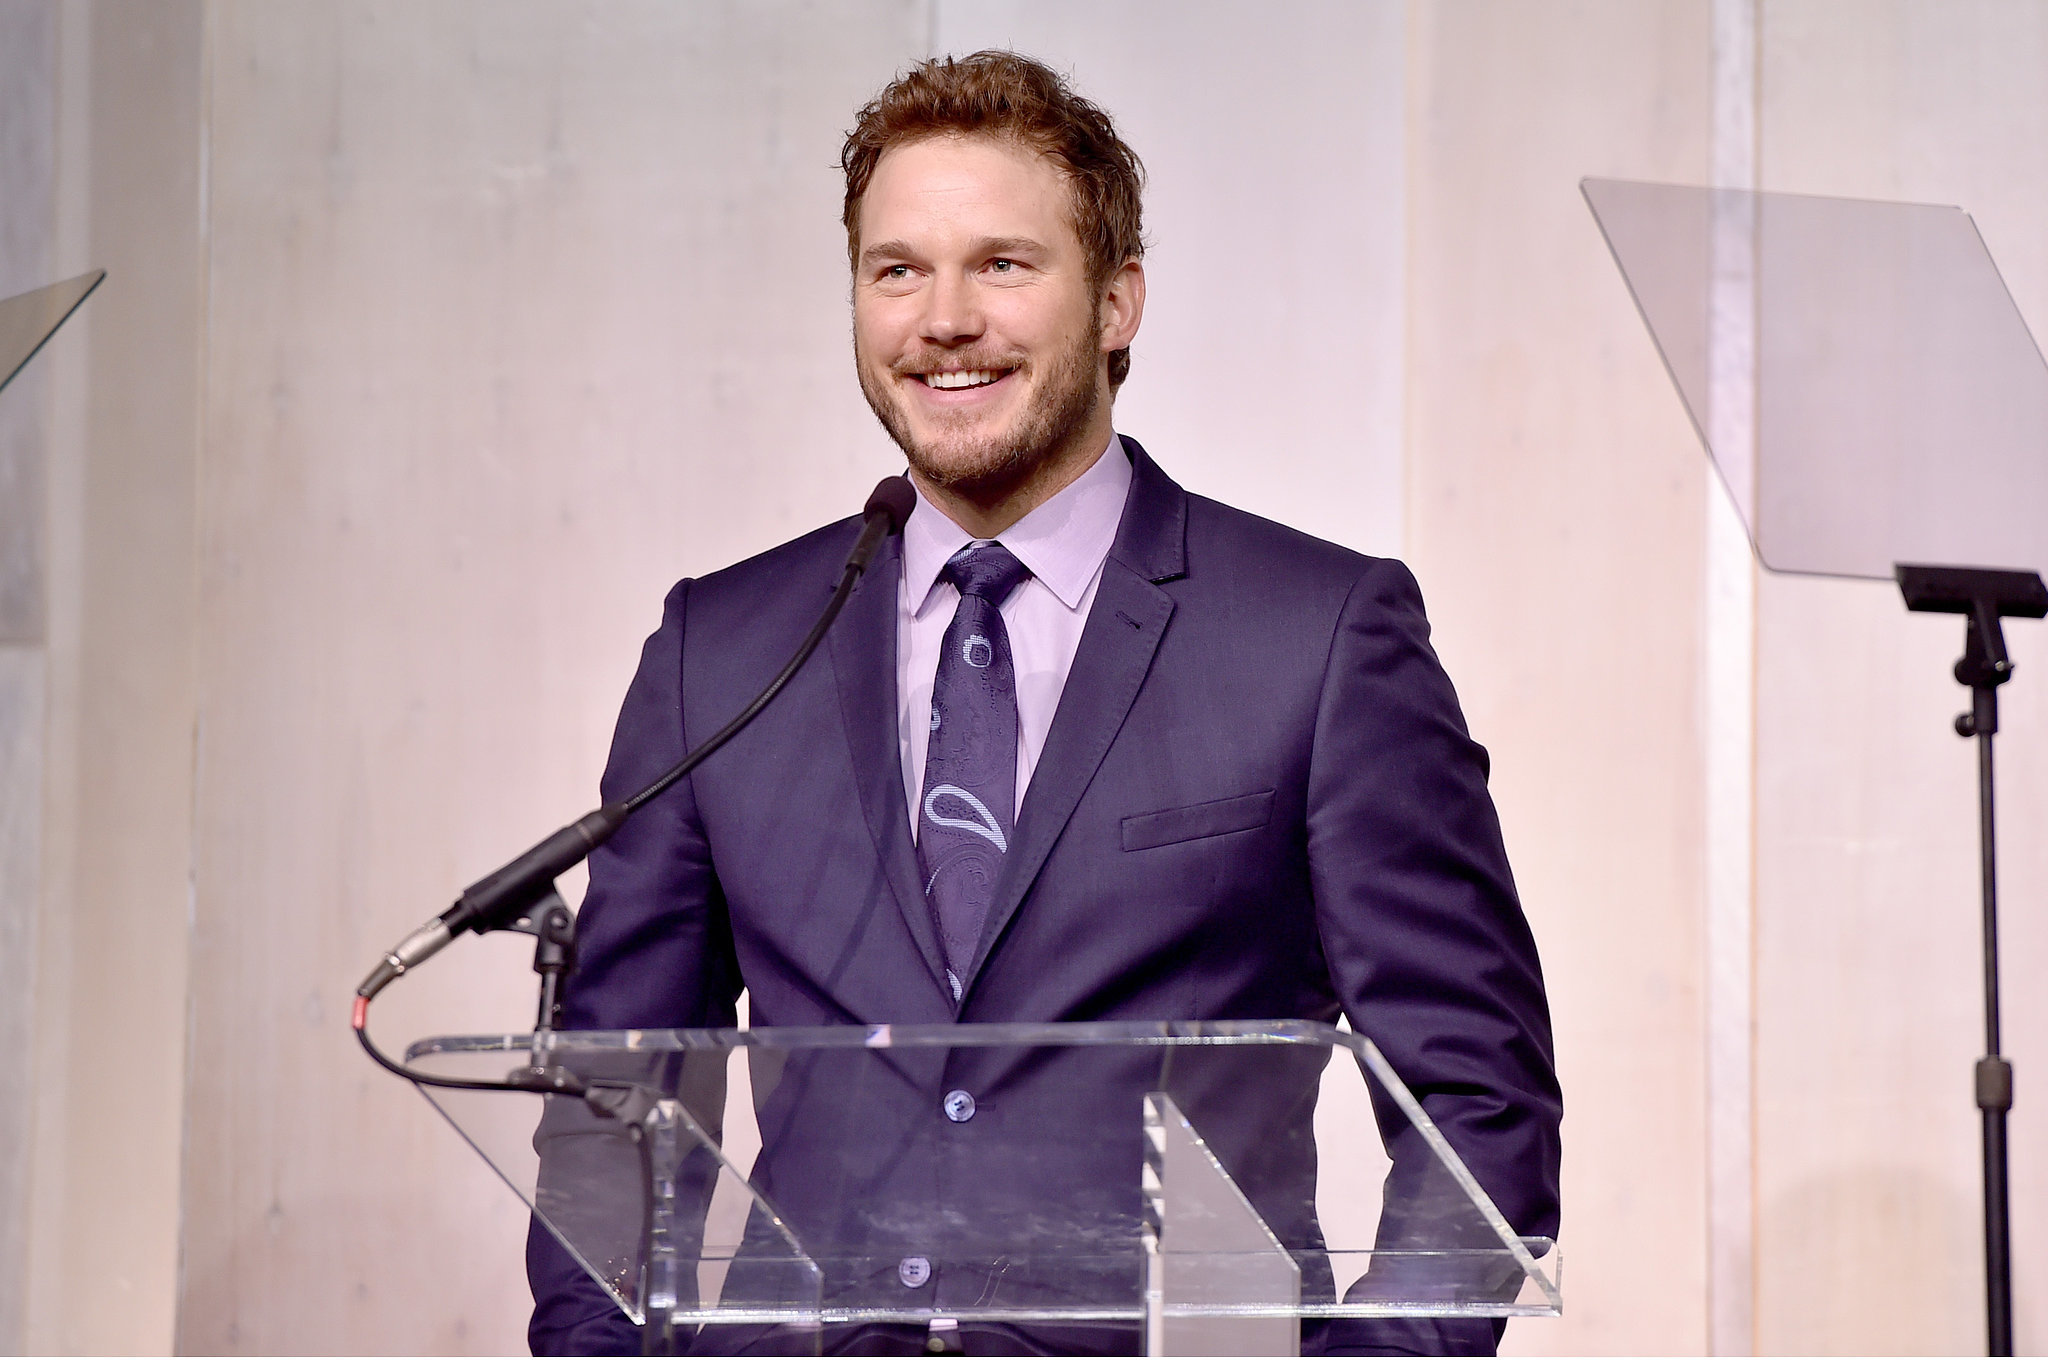 Chris Pratt gives a moving speech about his son's premature birth